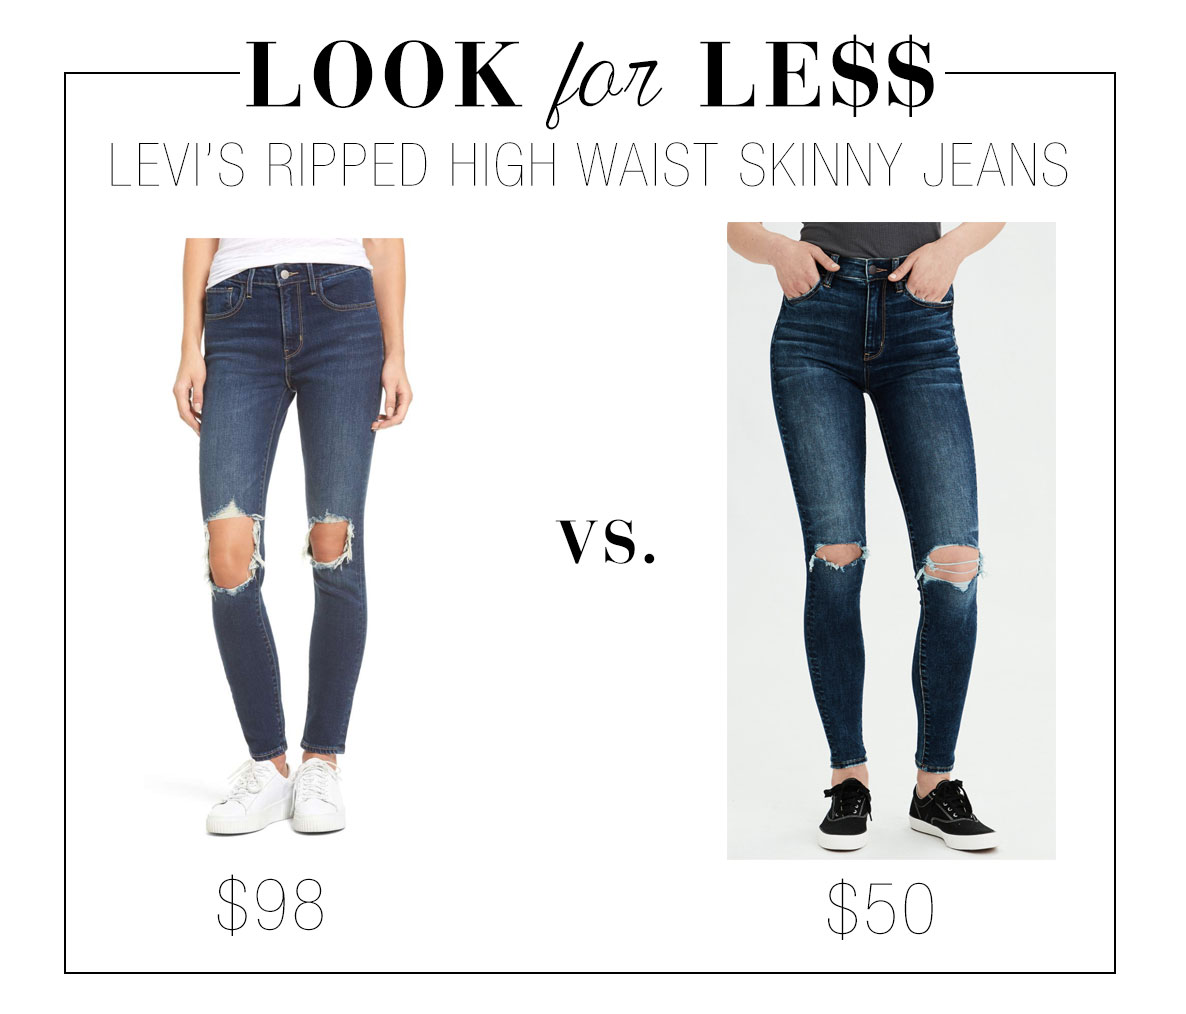 Levi's jeans look for less